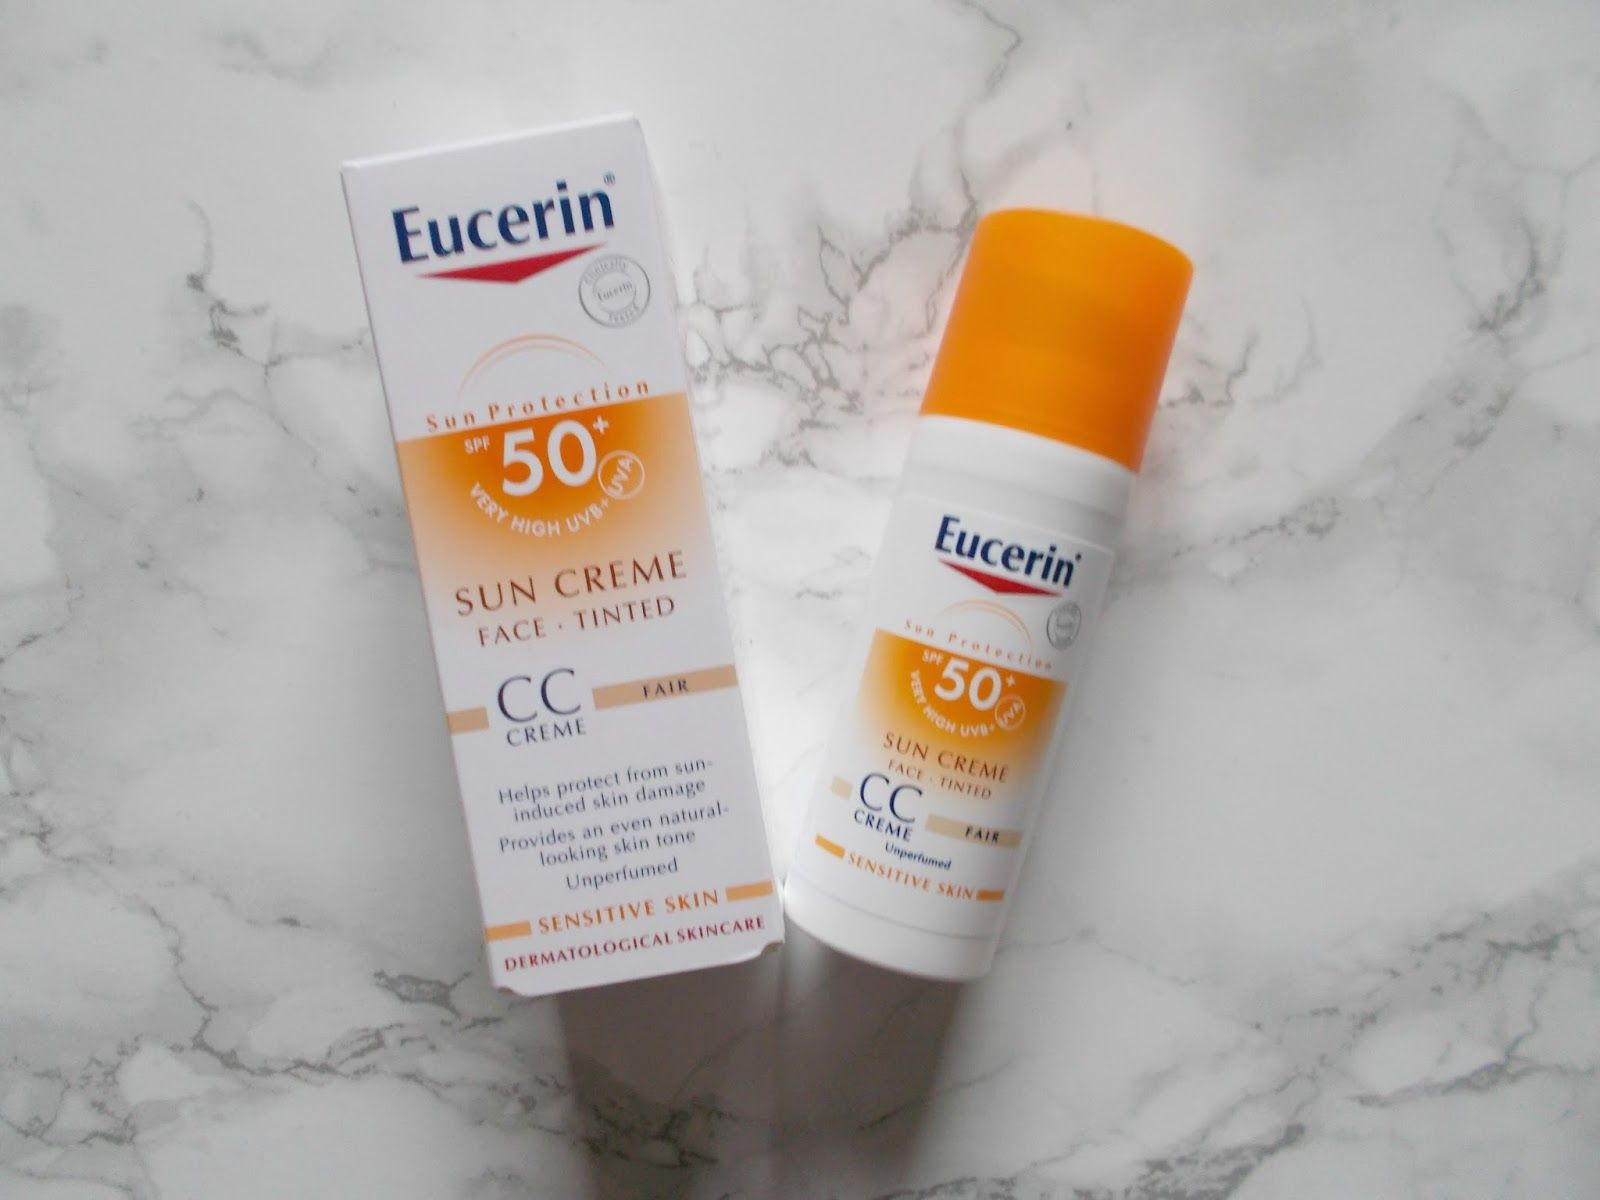 eucerin tinted spf 50 review